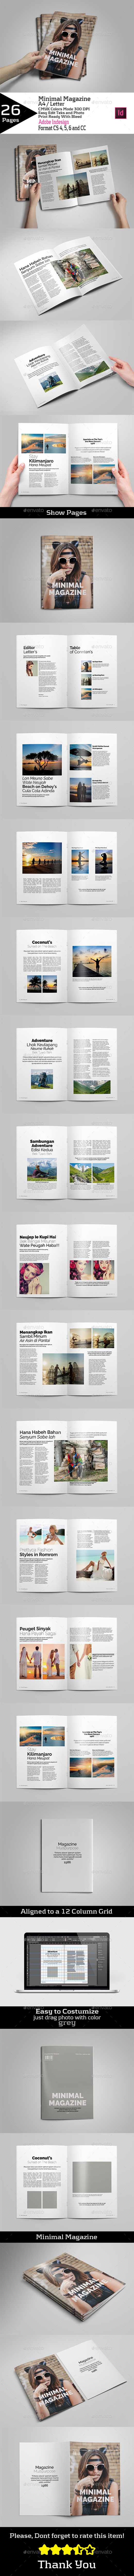 Minimal Magazine A4/Letter - Magazines Print Templates